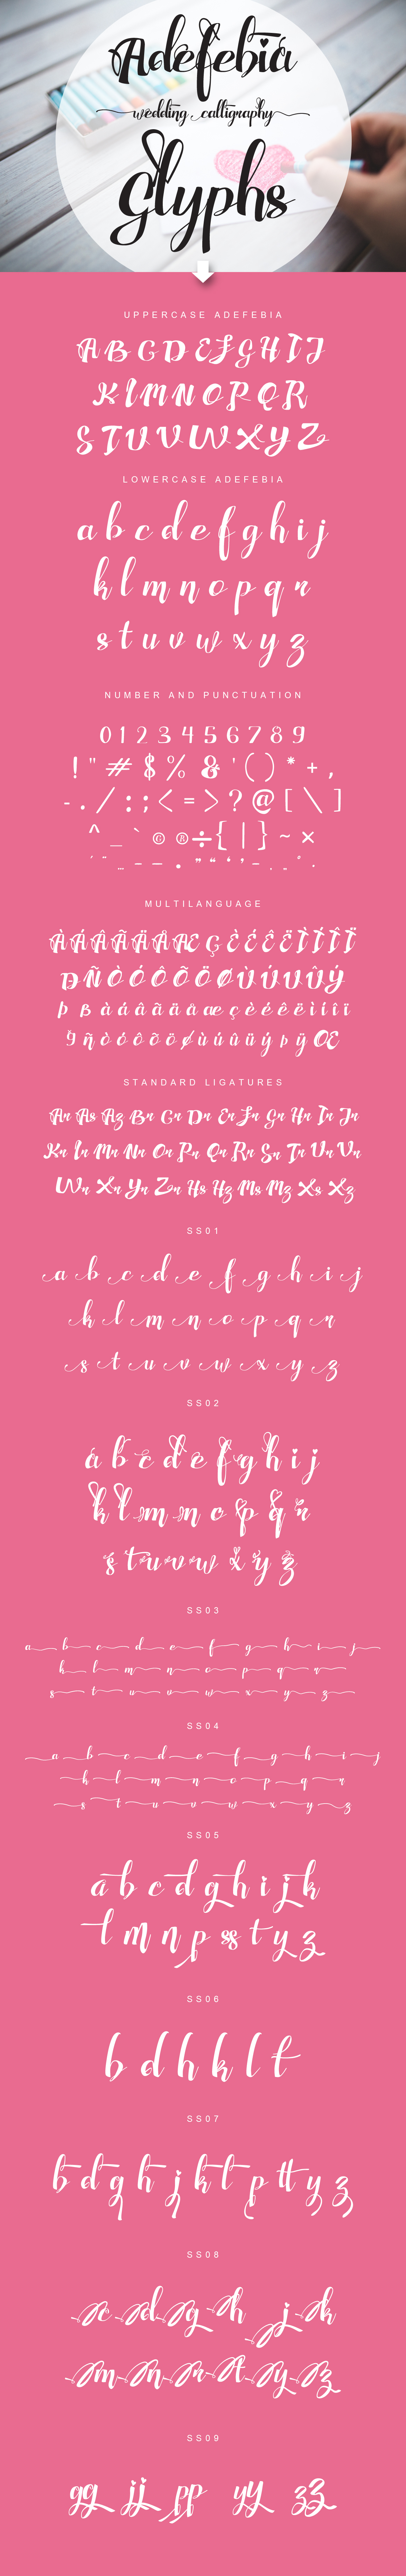 Adefebia font family